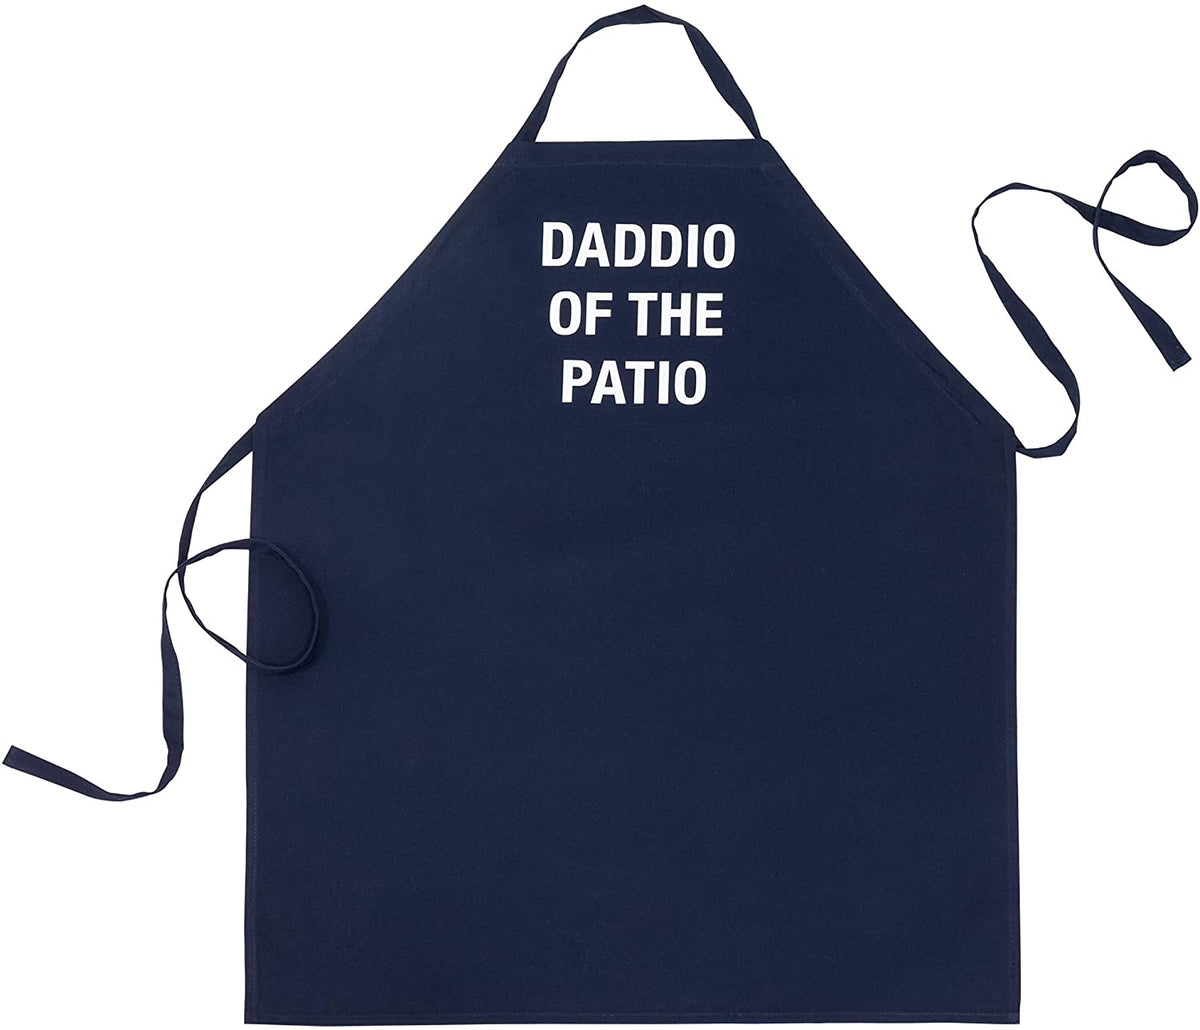 About Face Designs - Daddio of The Patio Apron